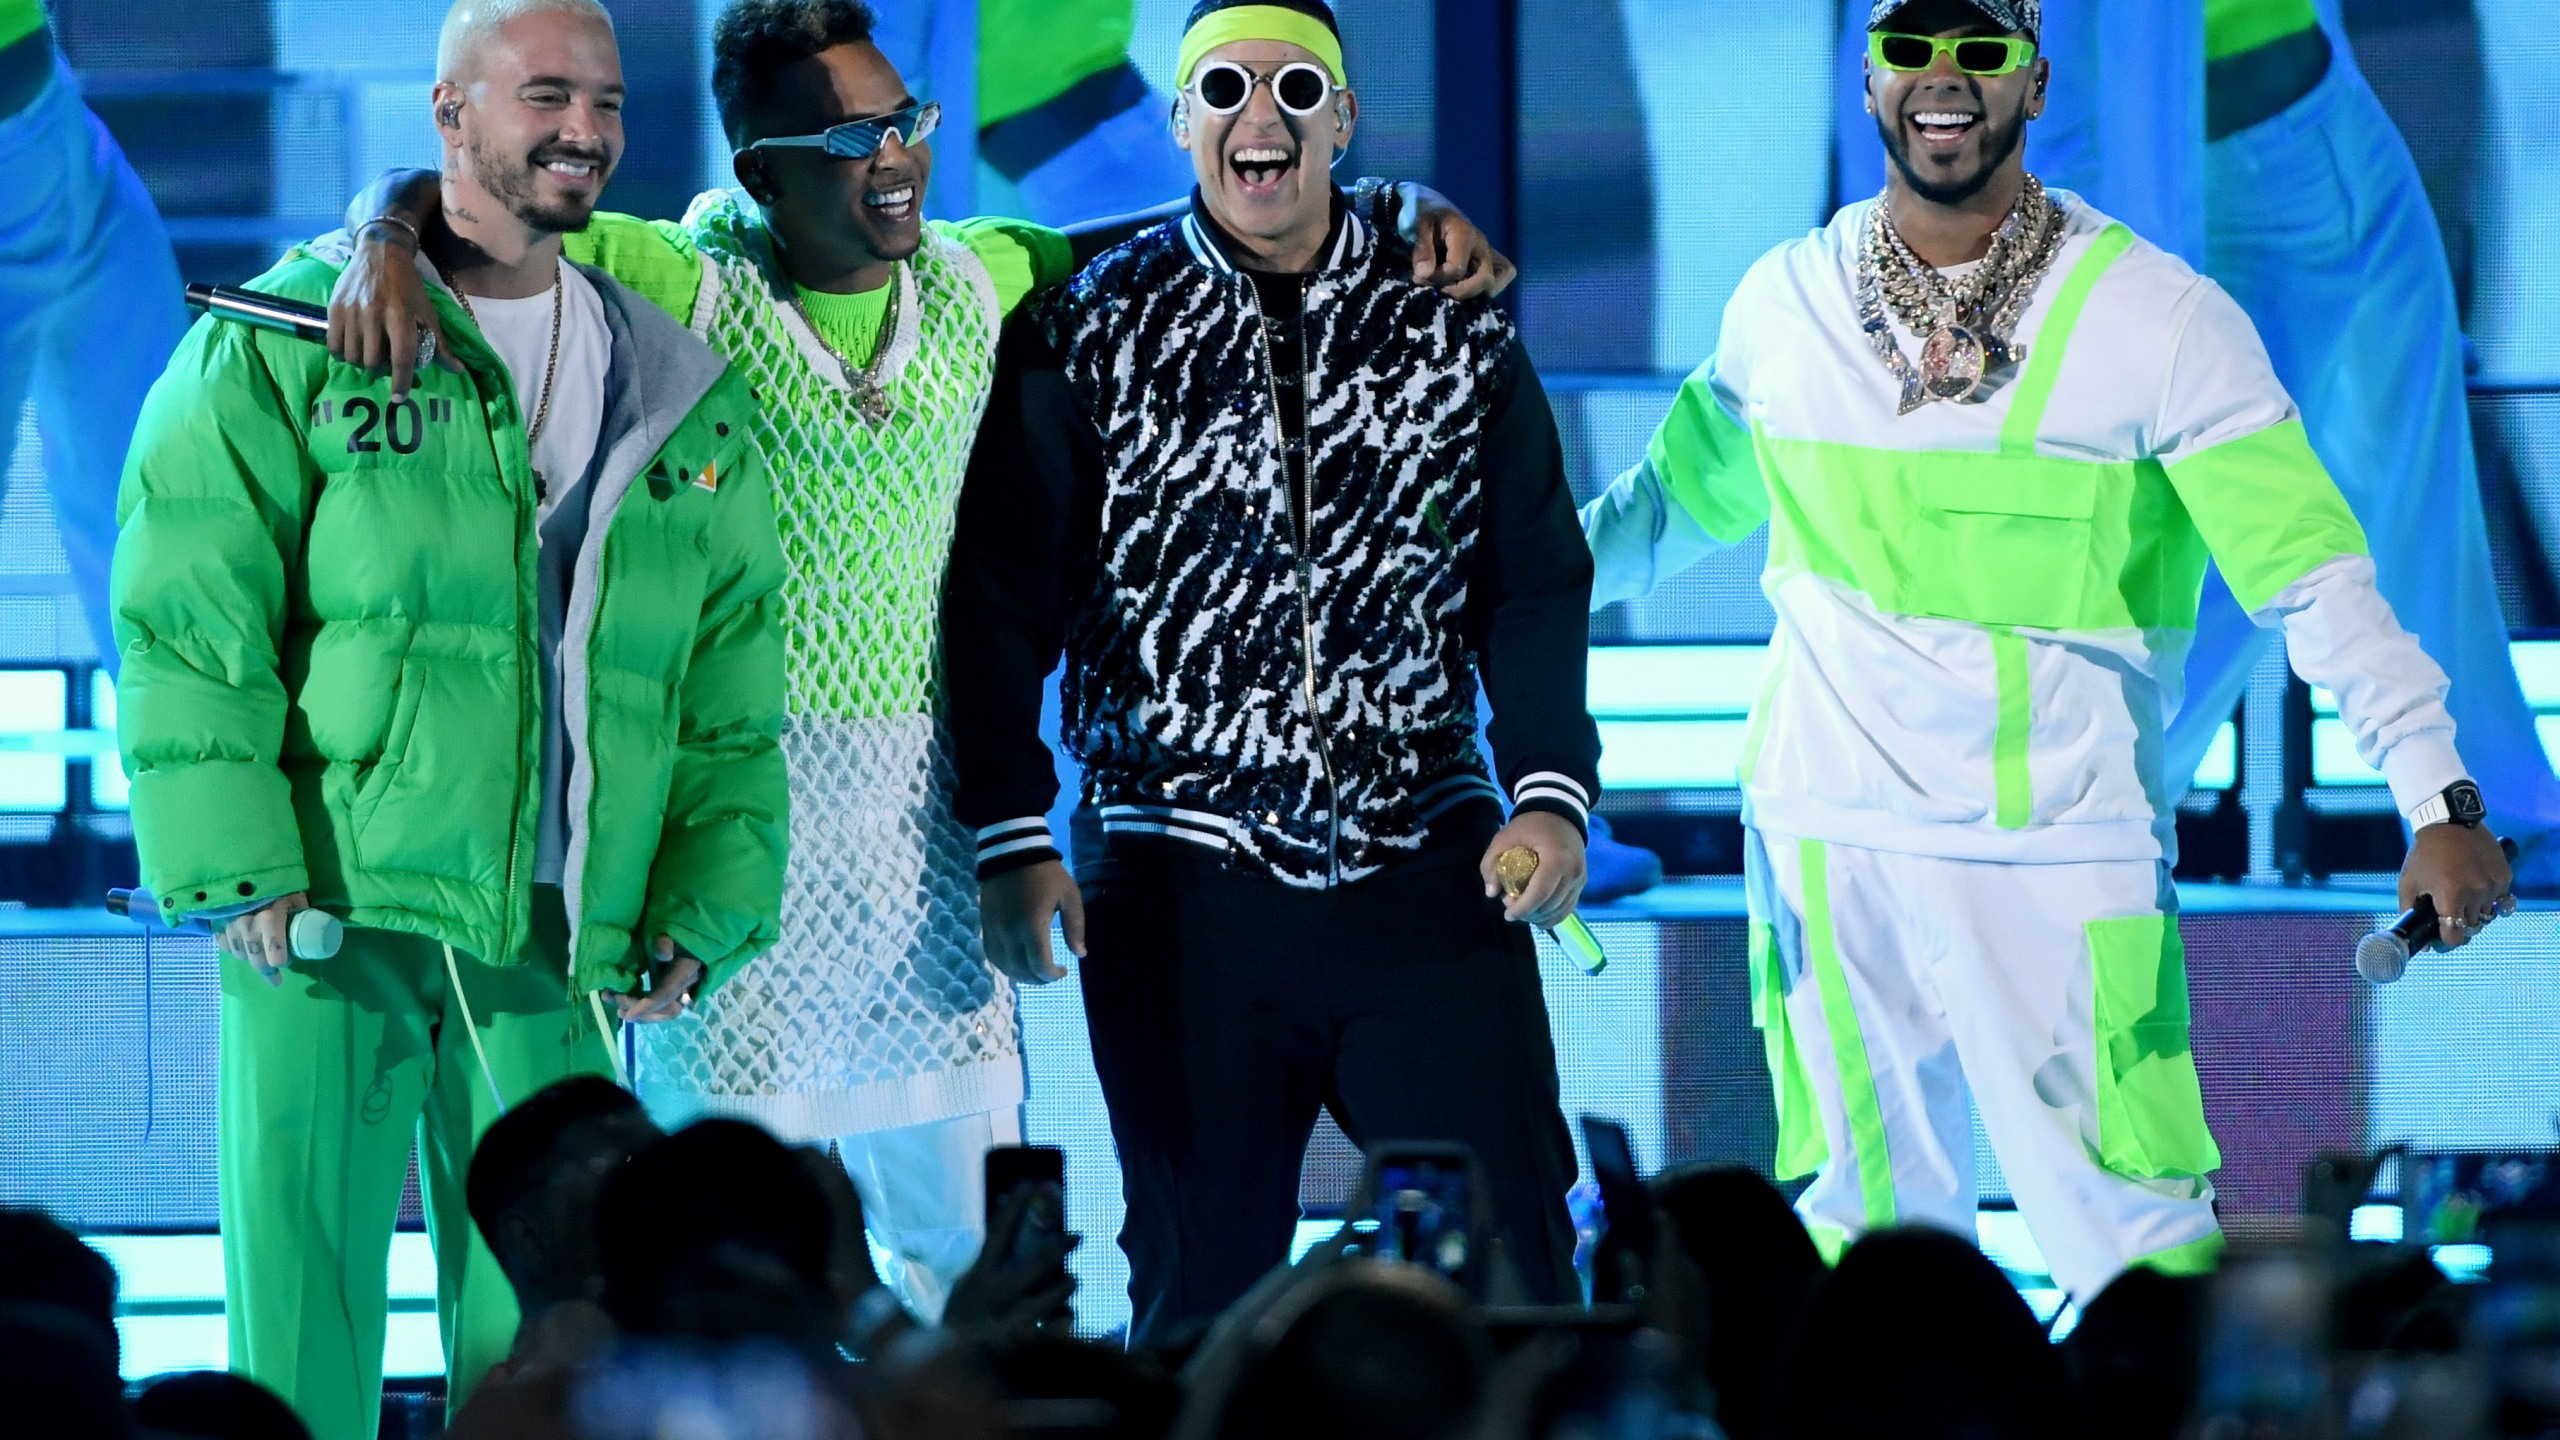 From left to right: J Balvin, Ozuna, Daddy Yankee and Anuel AA perform during the 2019 Billboard Latin Music Awards at the Mandalay Bay Events Center on April 25, 2019, in Las Vegas, Nevada. (Credit: Ethan Miller/Getty Images)